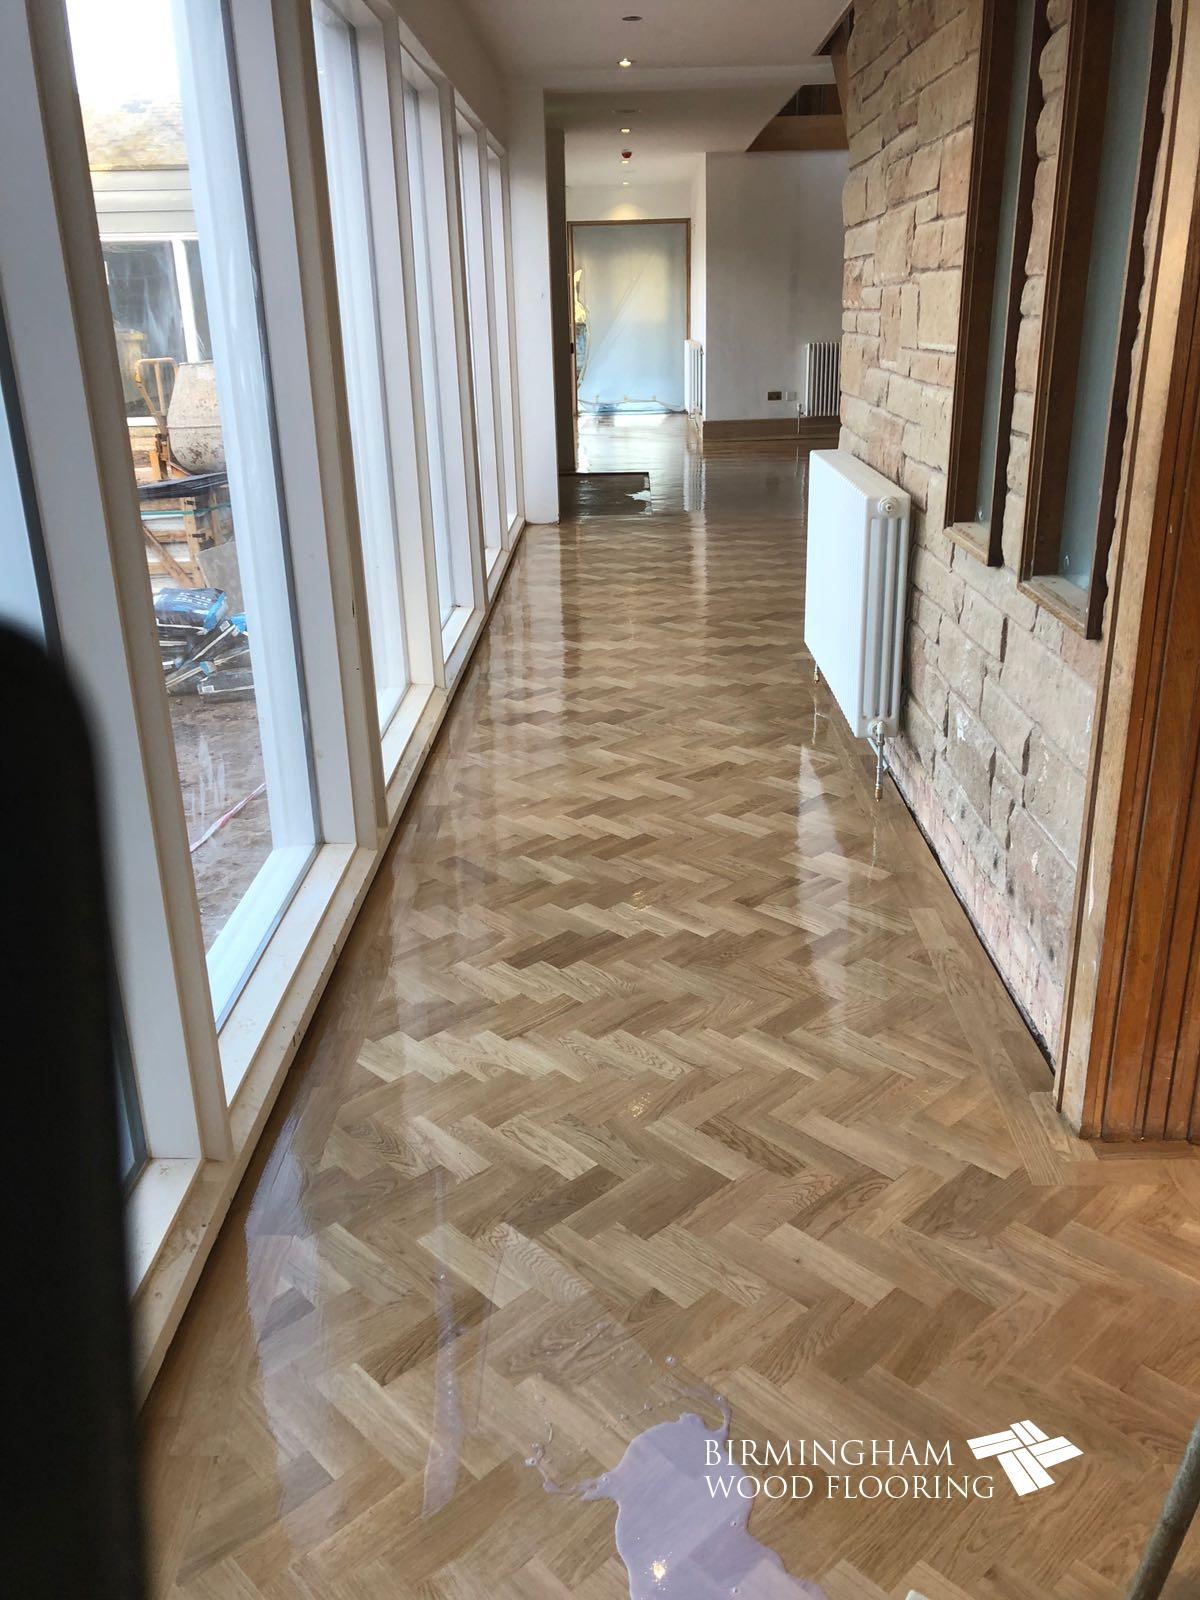 Oak parquet flooring finished with Bona traffic HD floor lacquer